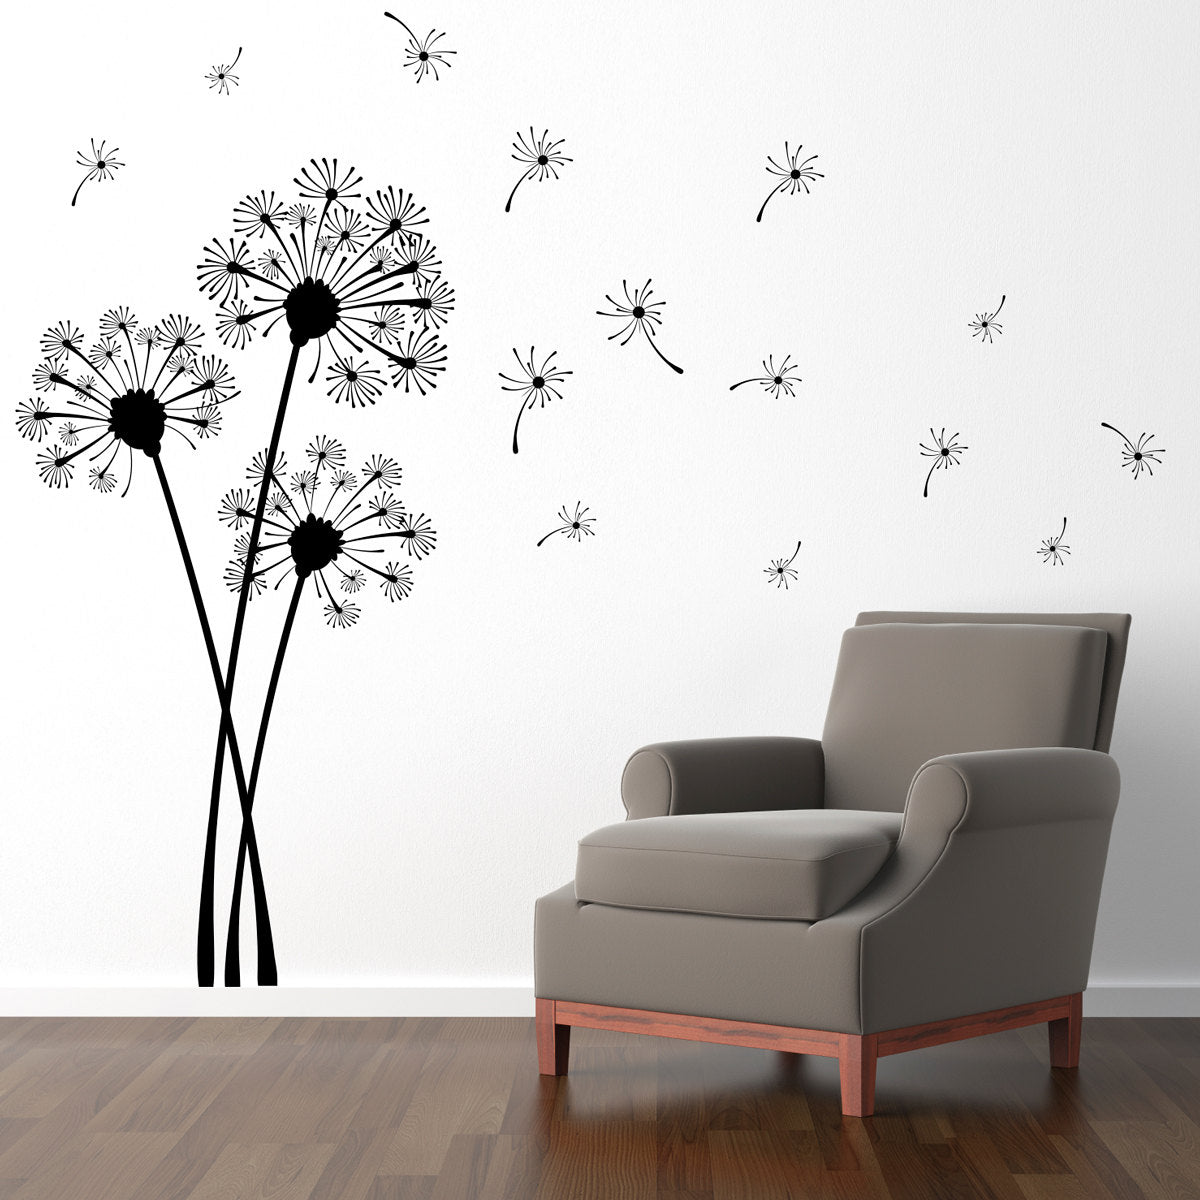 Dandelion Wall Decal - Flower Decor - Dandelion Wall Sticker - Extra Large : white dandelion wall decal - www.pureclipart.com